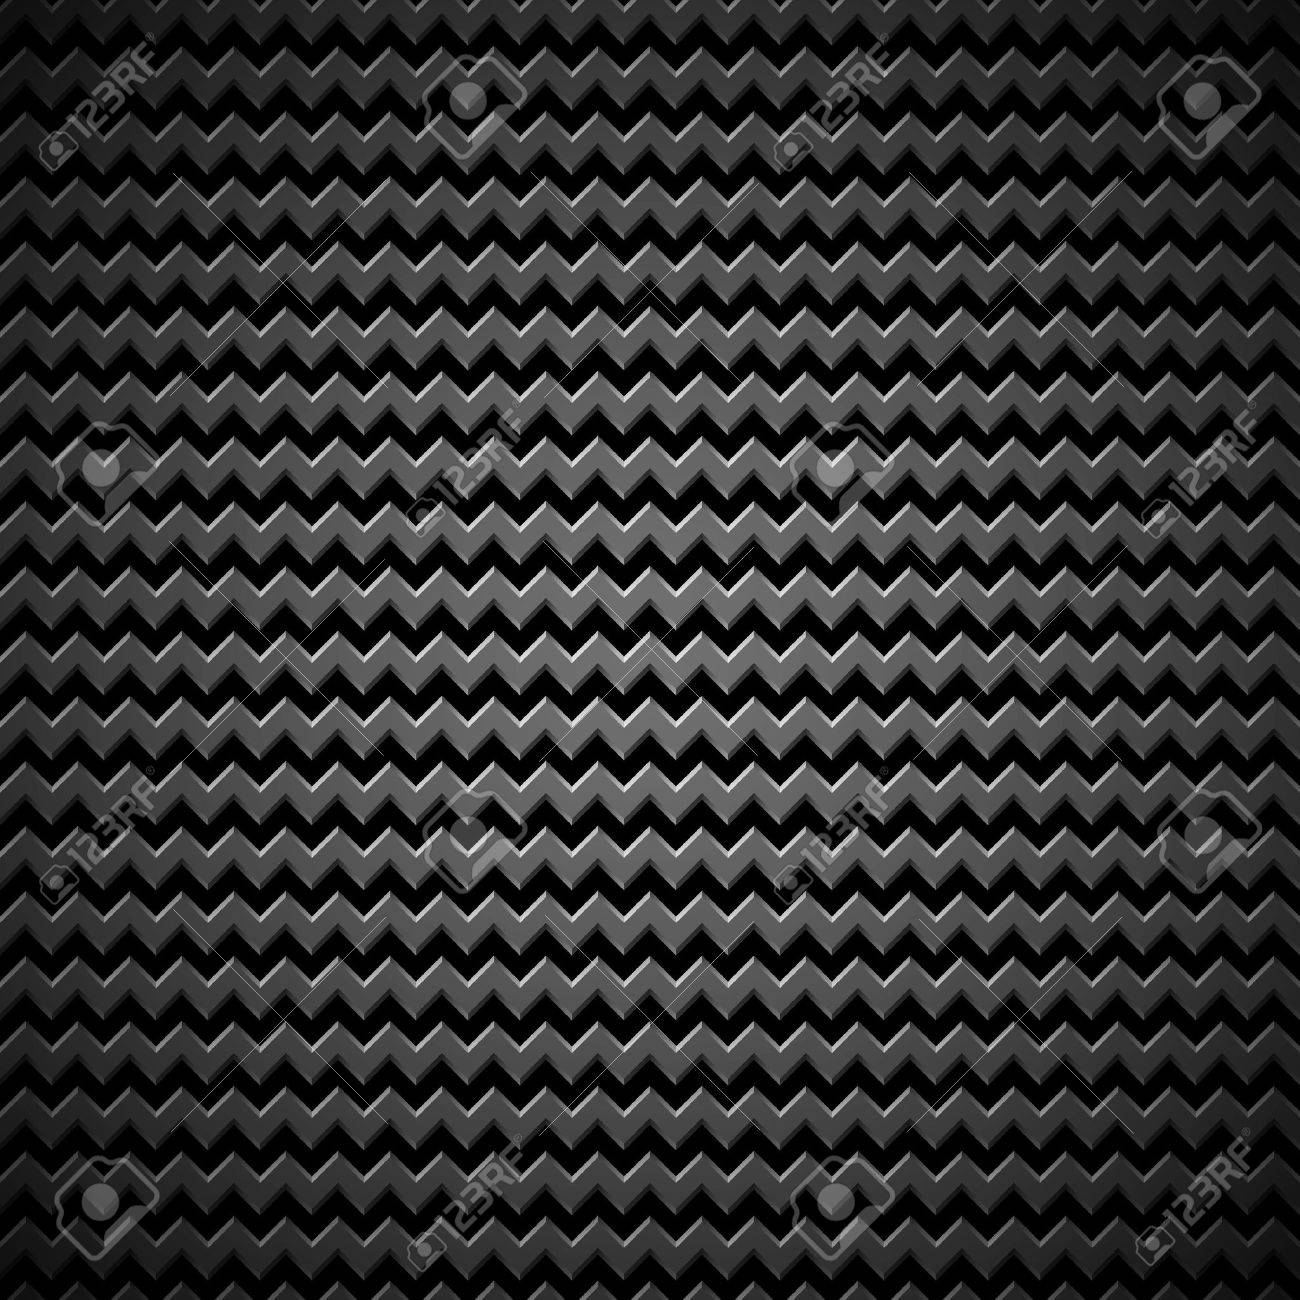 Technology background with seamless black metal  stainless steel, titan, chrome  texture for internet sites, web user interfaces  UI , applications  apps  and business presentations  Pattern Stock Vector - 19476560